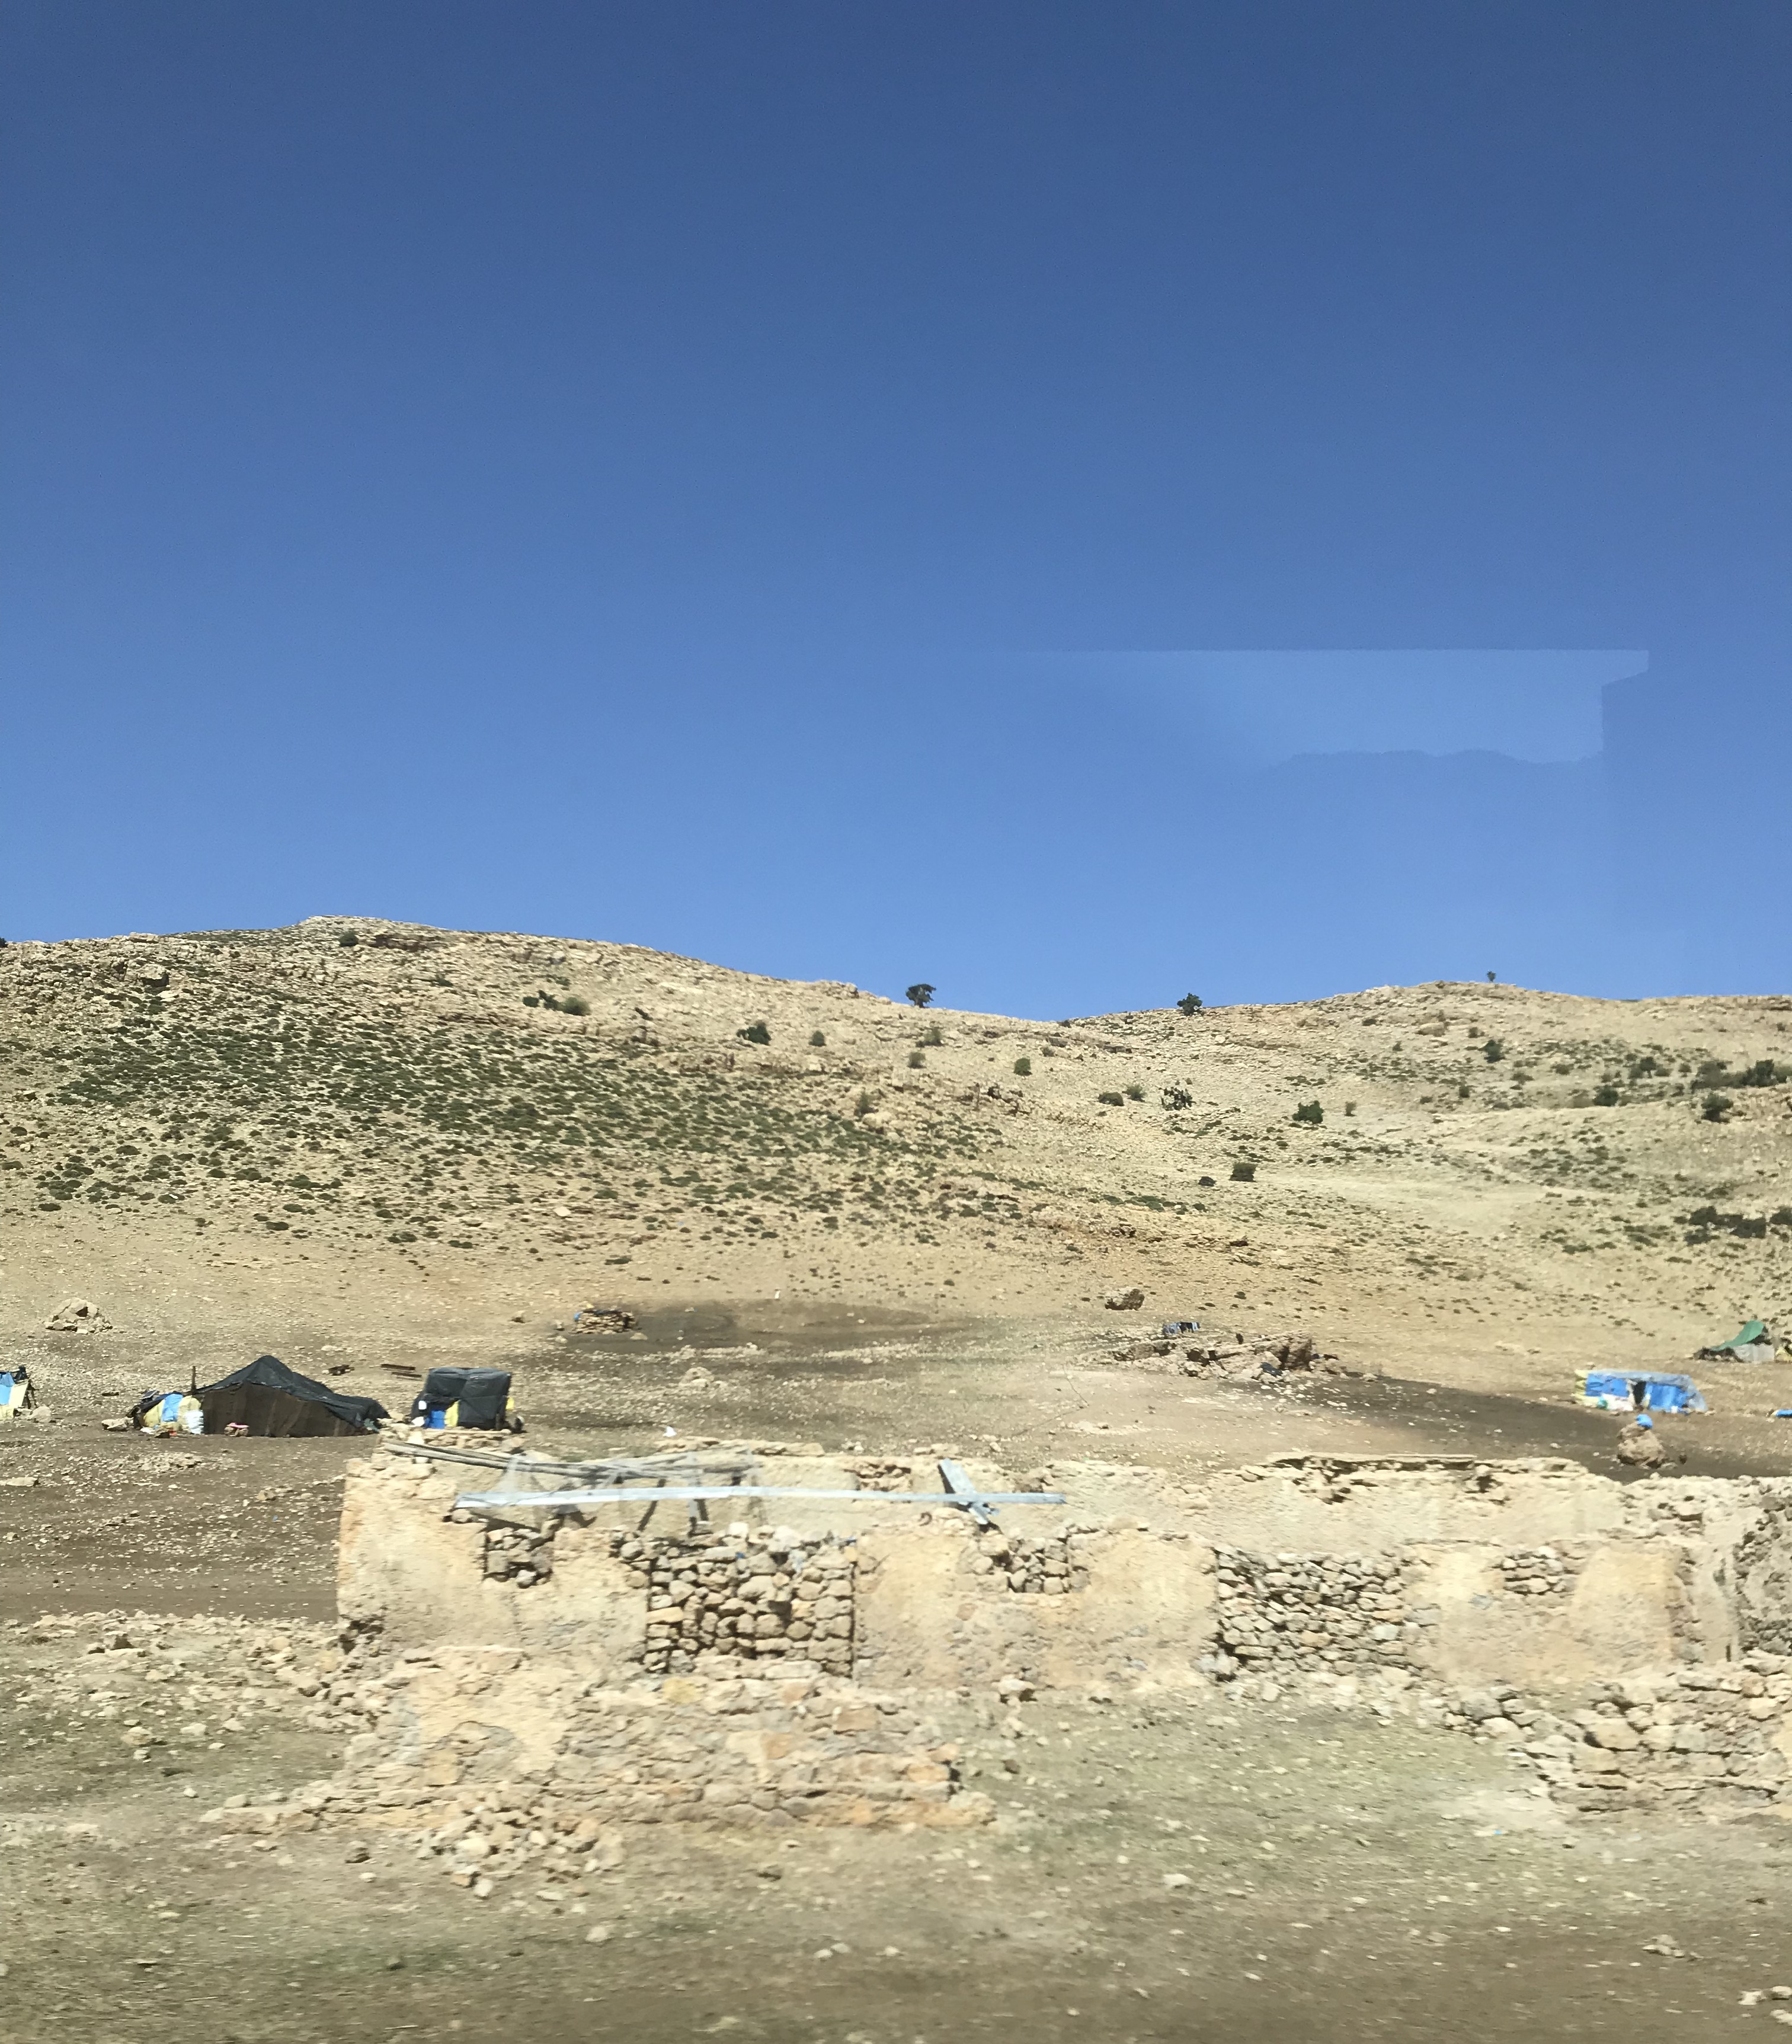 Nomad camp in Morocco